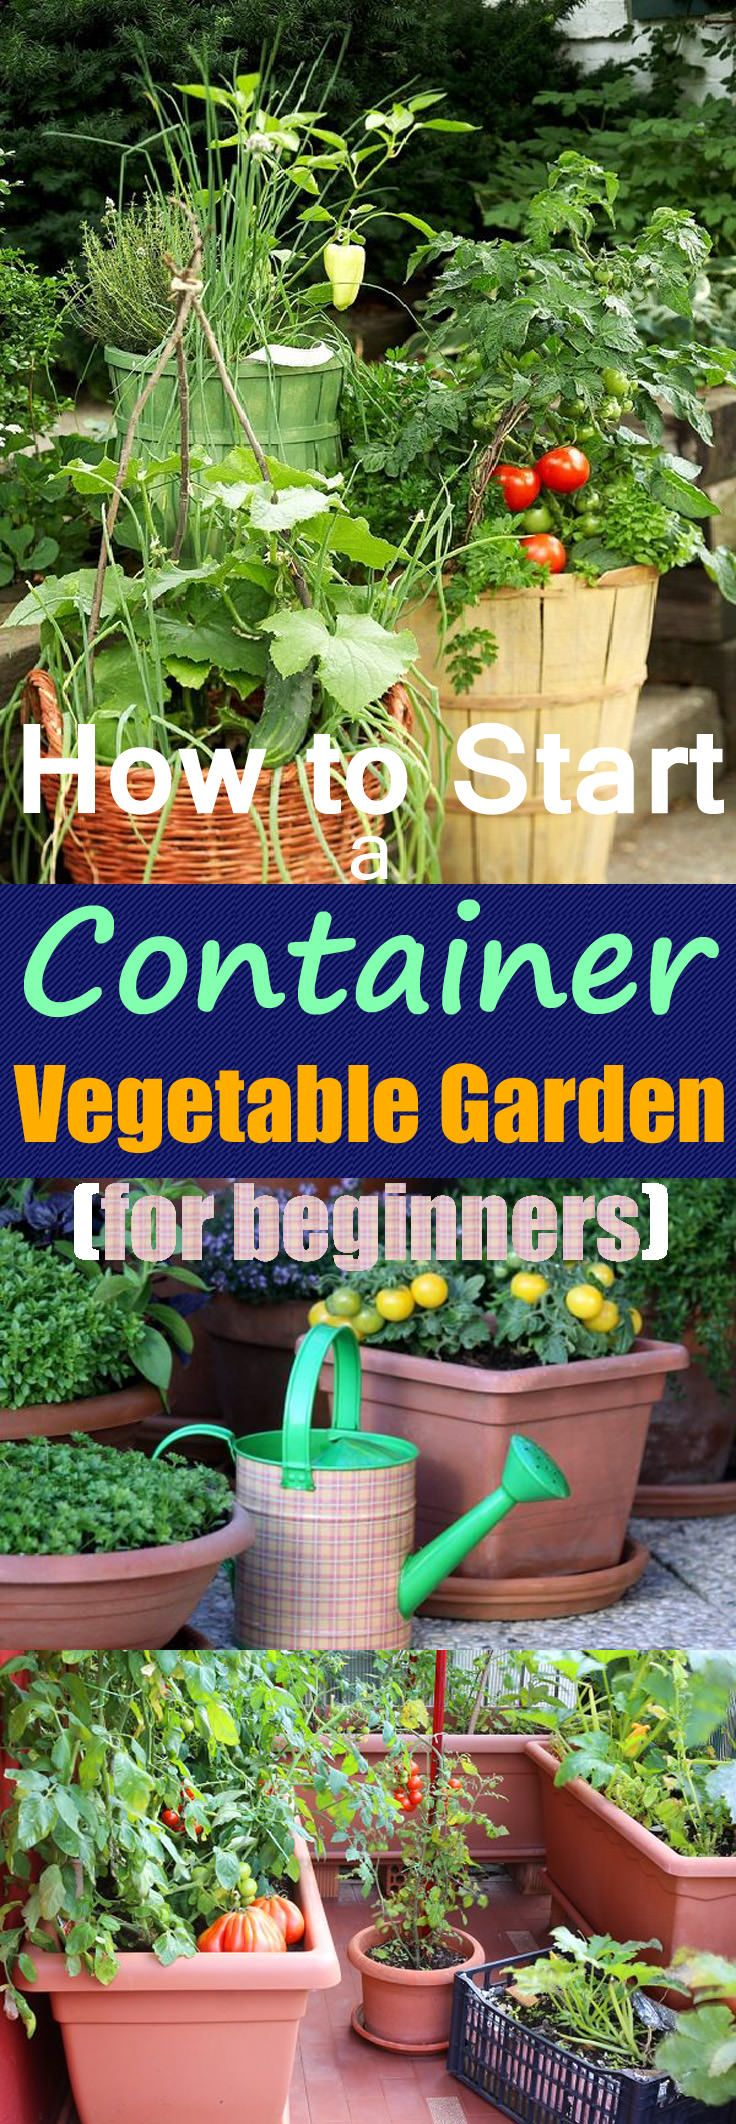 Growing Vegetables In Pots Container Gardening Vegetables